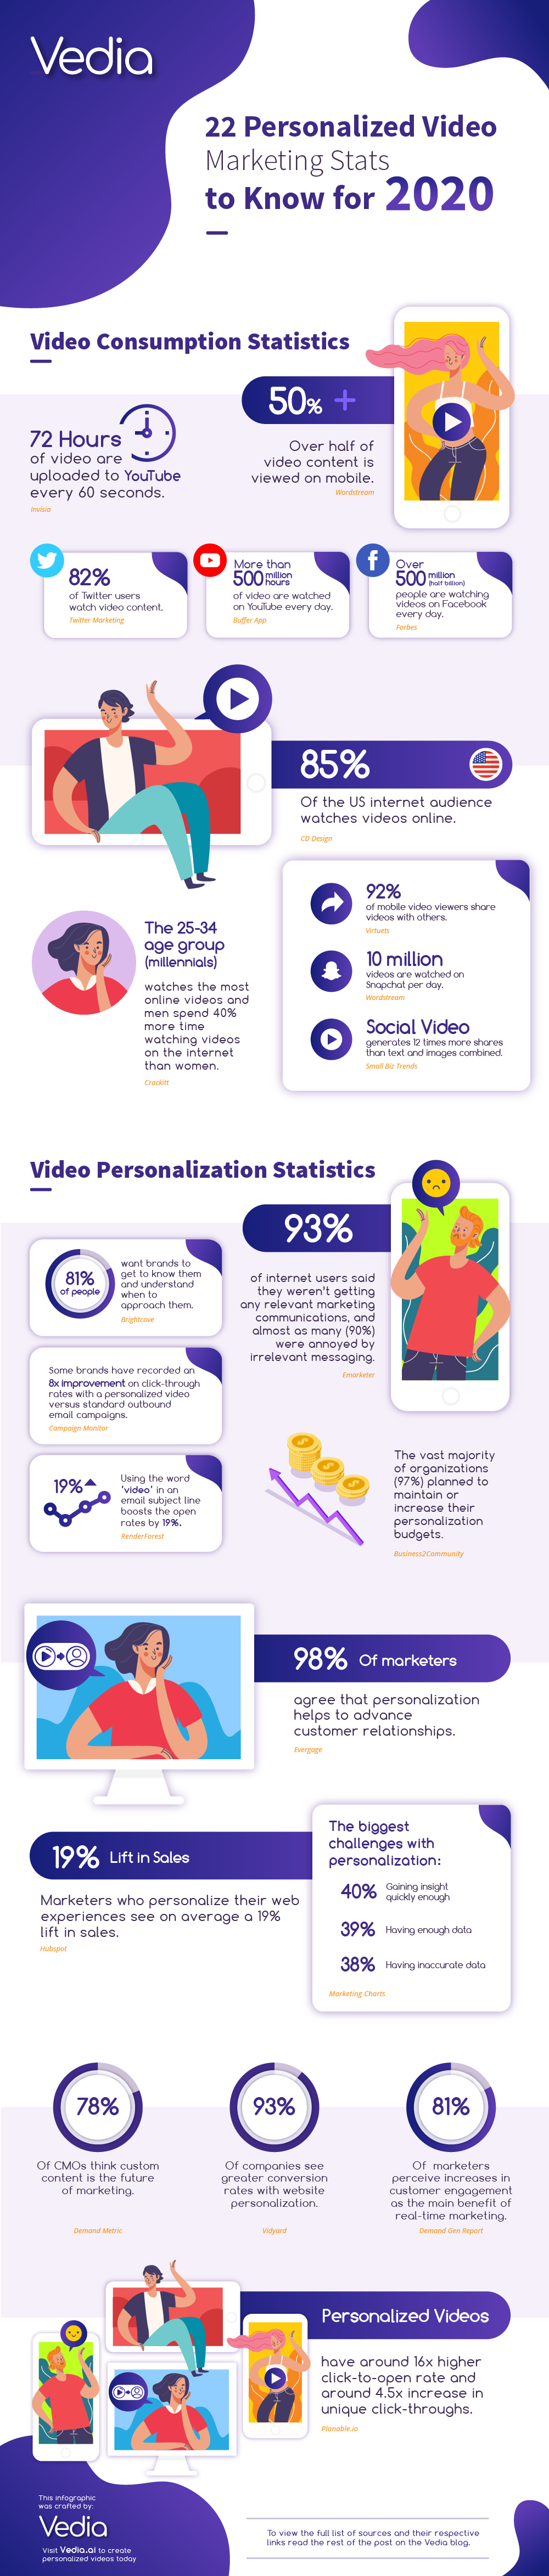 Steal this infographic and start using video marketing personalization in your marketing strategy